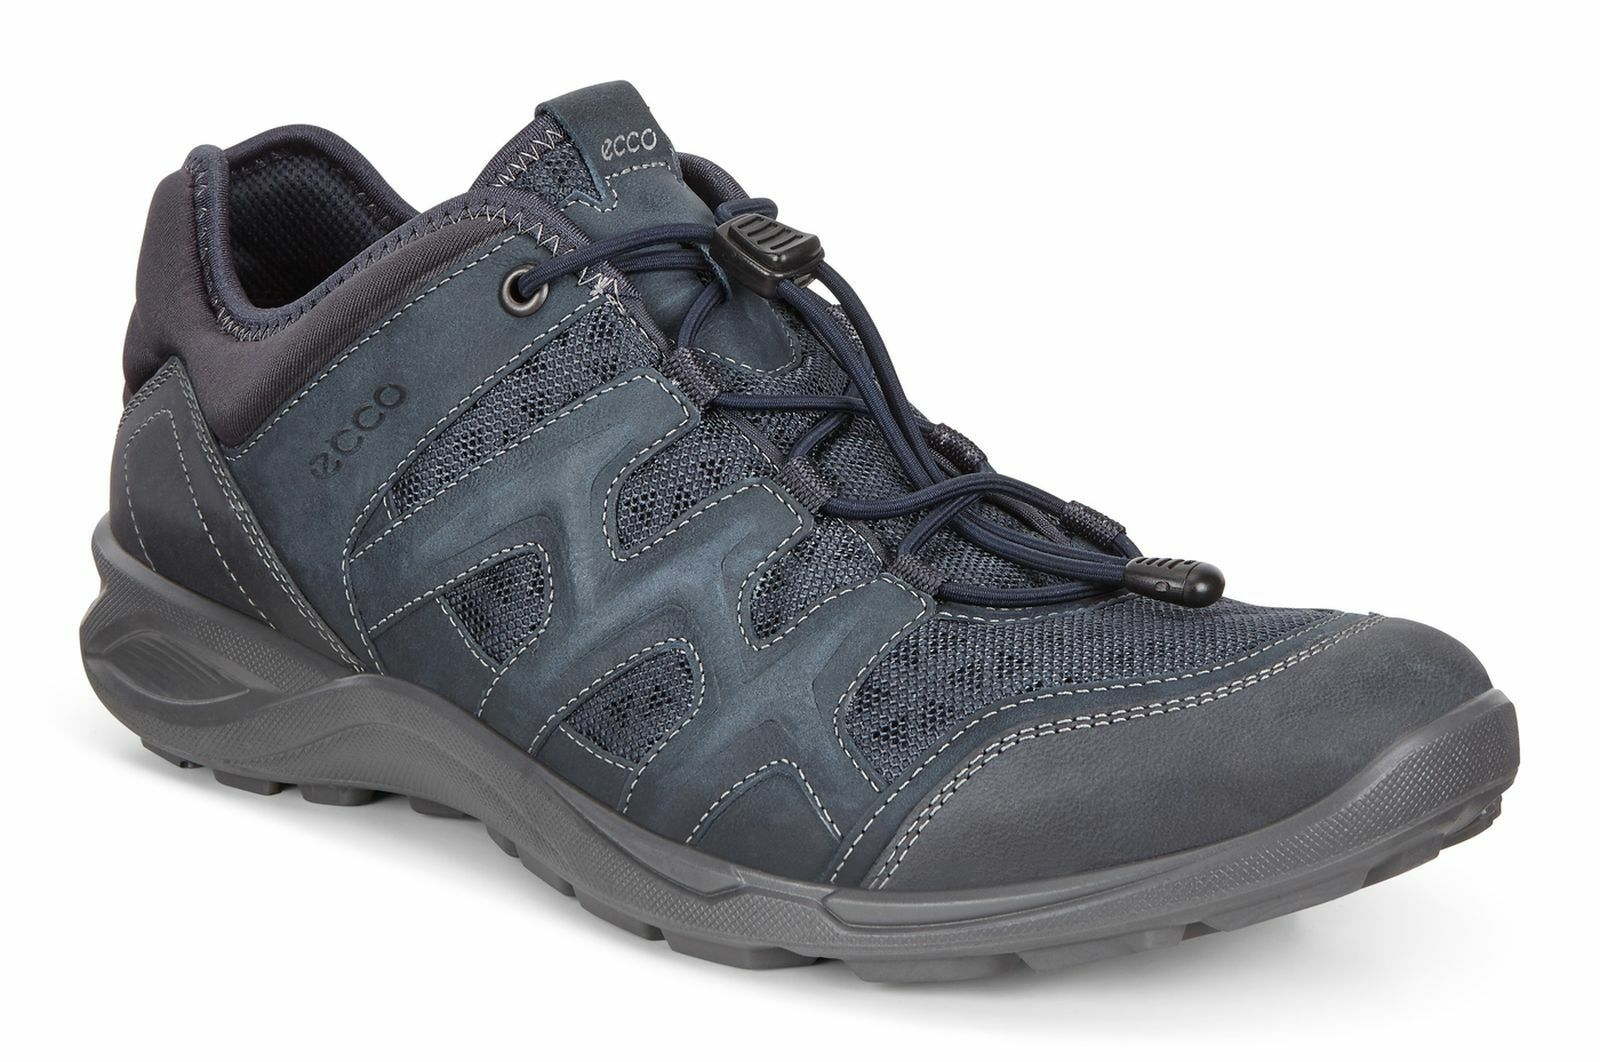 Ecco caballero zapatos casual walkingzapatos terracruise LT low azul 825764 5513 8